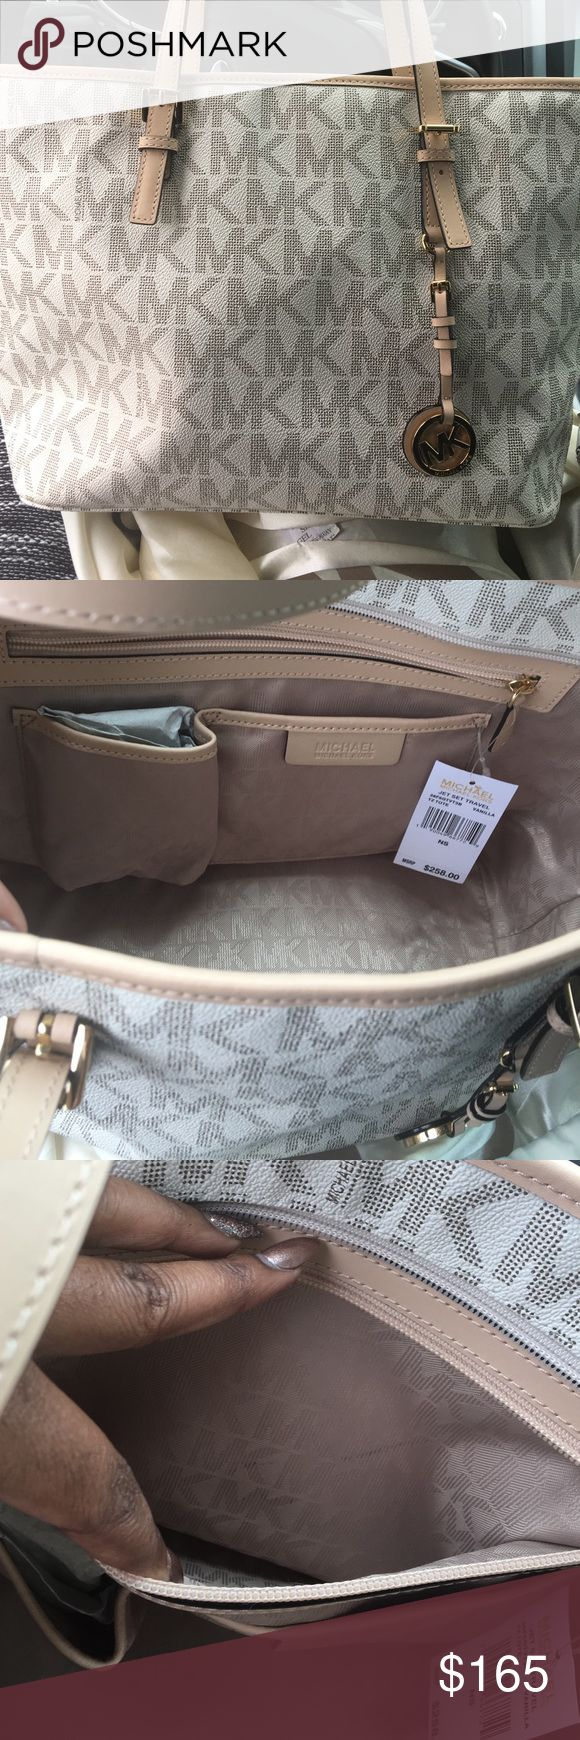 Michael Kors Jet Set Travel Tote Purse is in excellent condition tag still attached! MICHAEL Michael Kors Bags